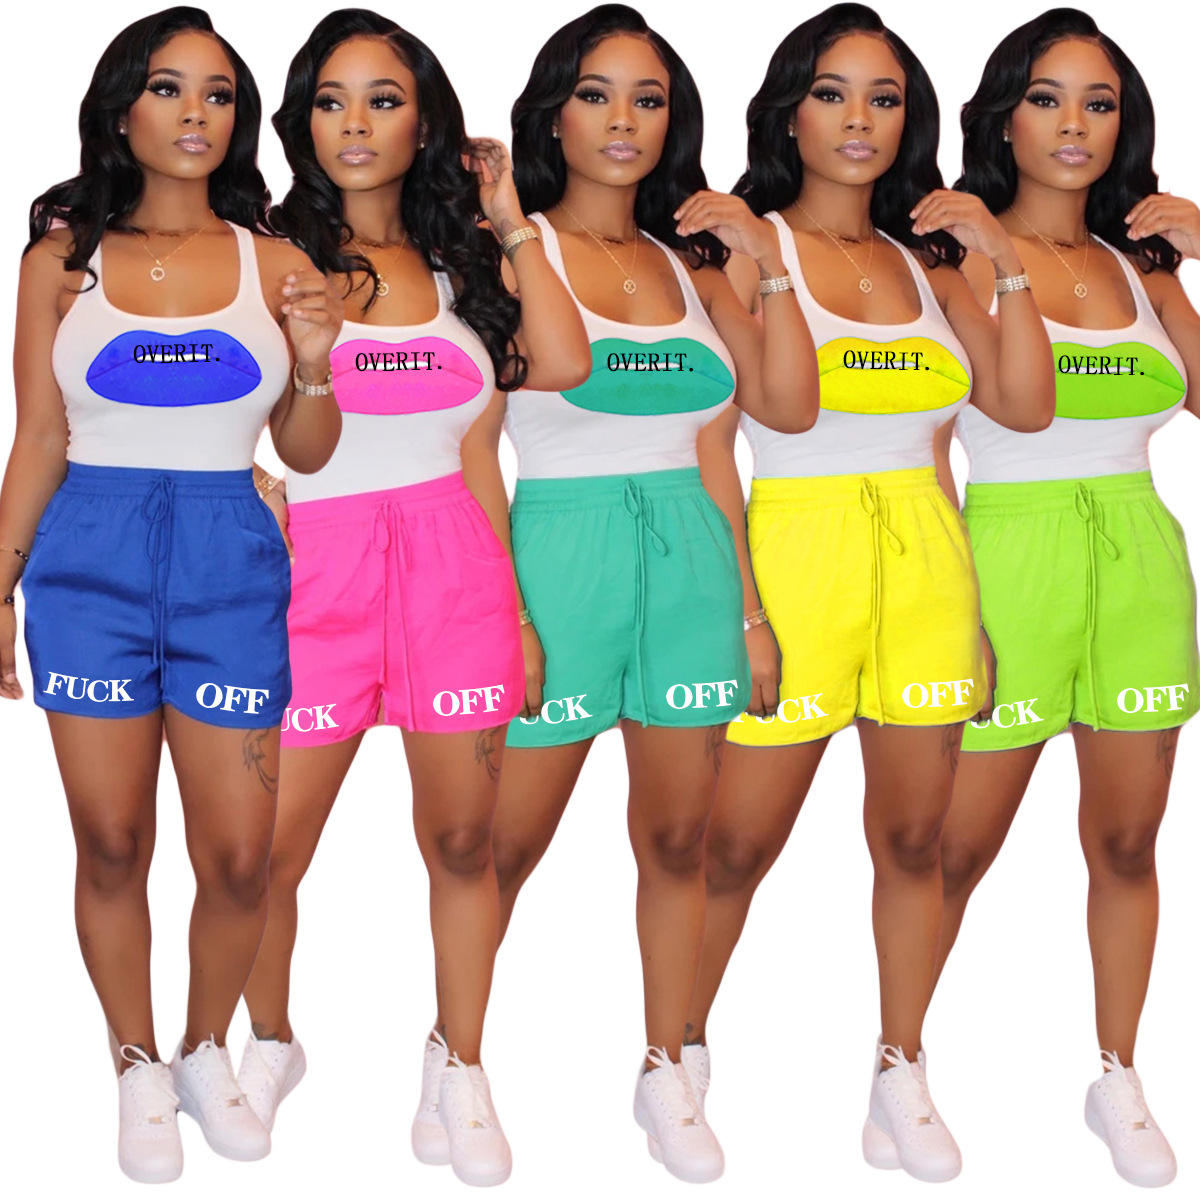 2020 Women Sets Summer Tracksuits Sportswear Letter Print Tops+Shorts Suit Two Piece Set 2 Pcs Night Club Party Outfits